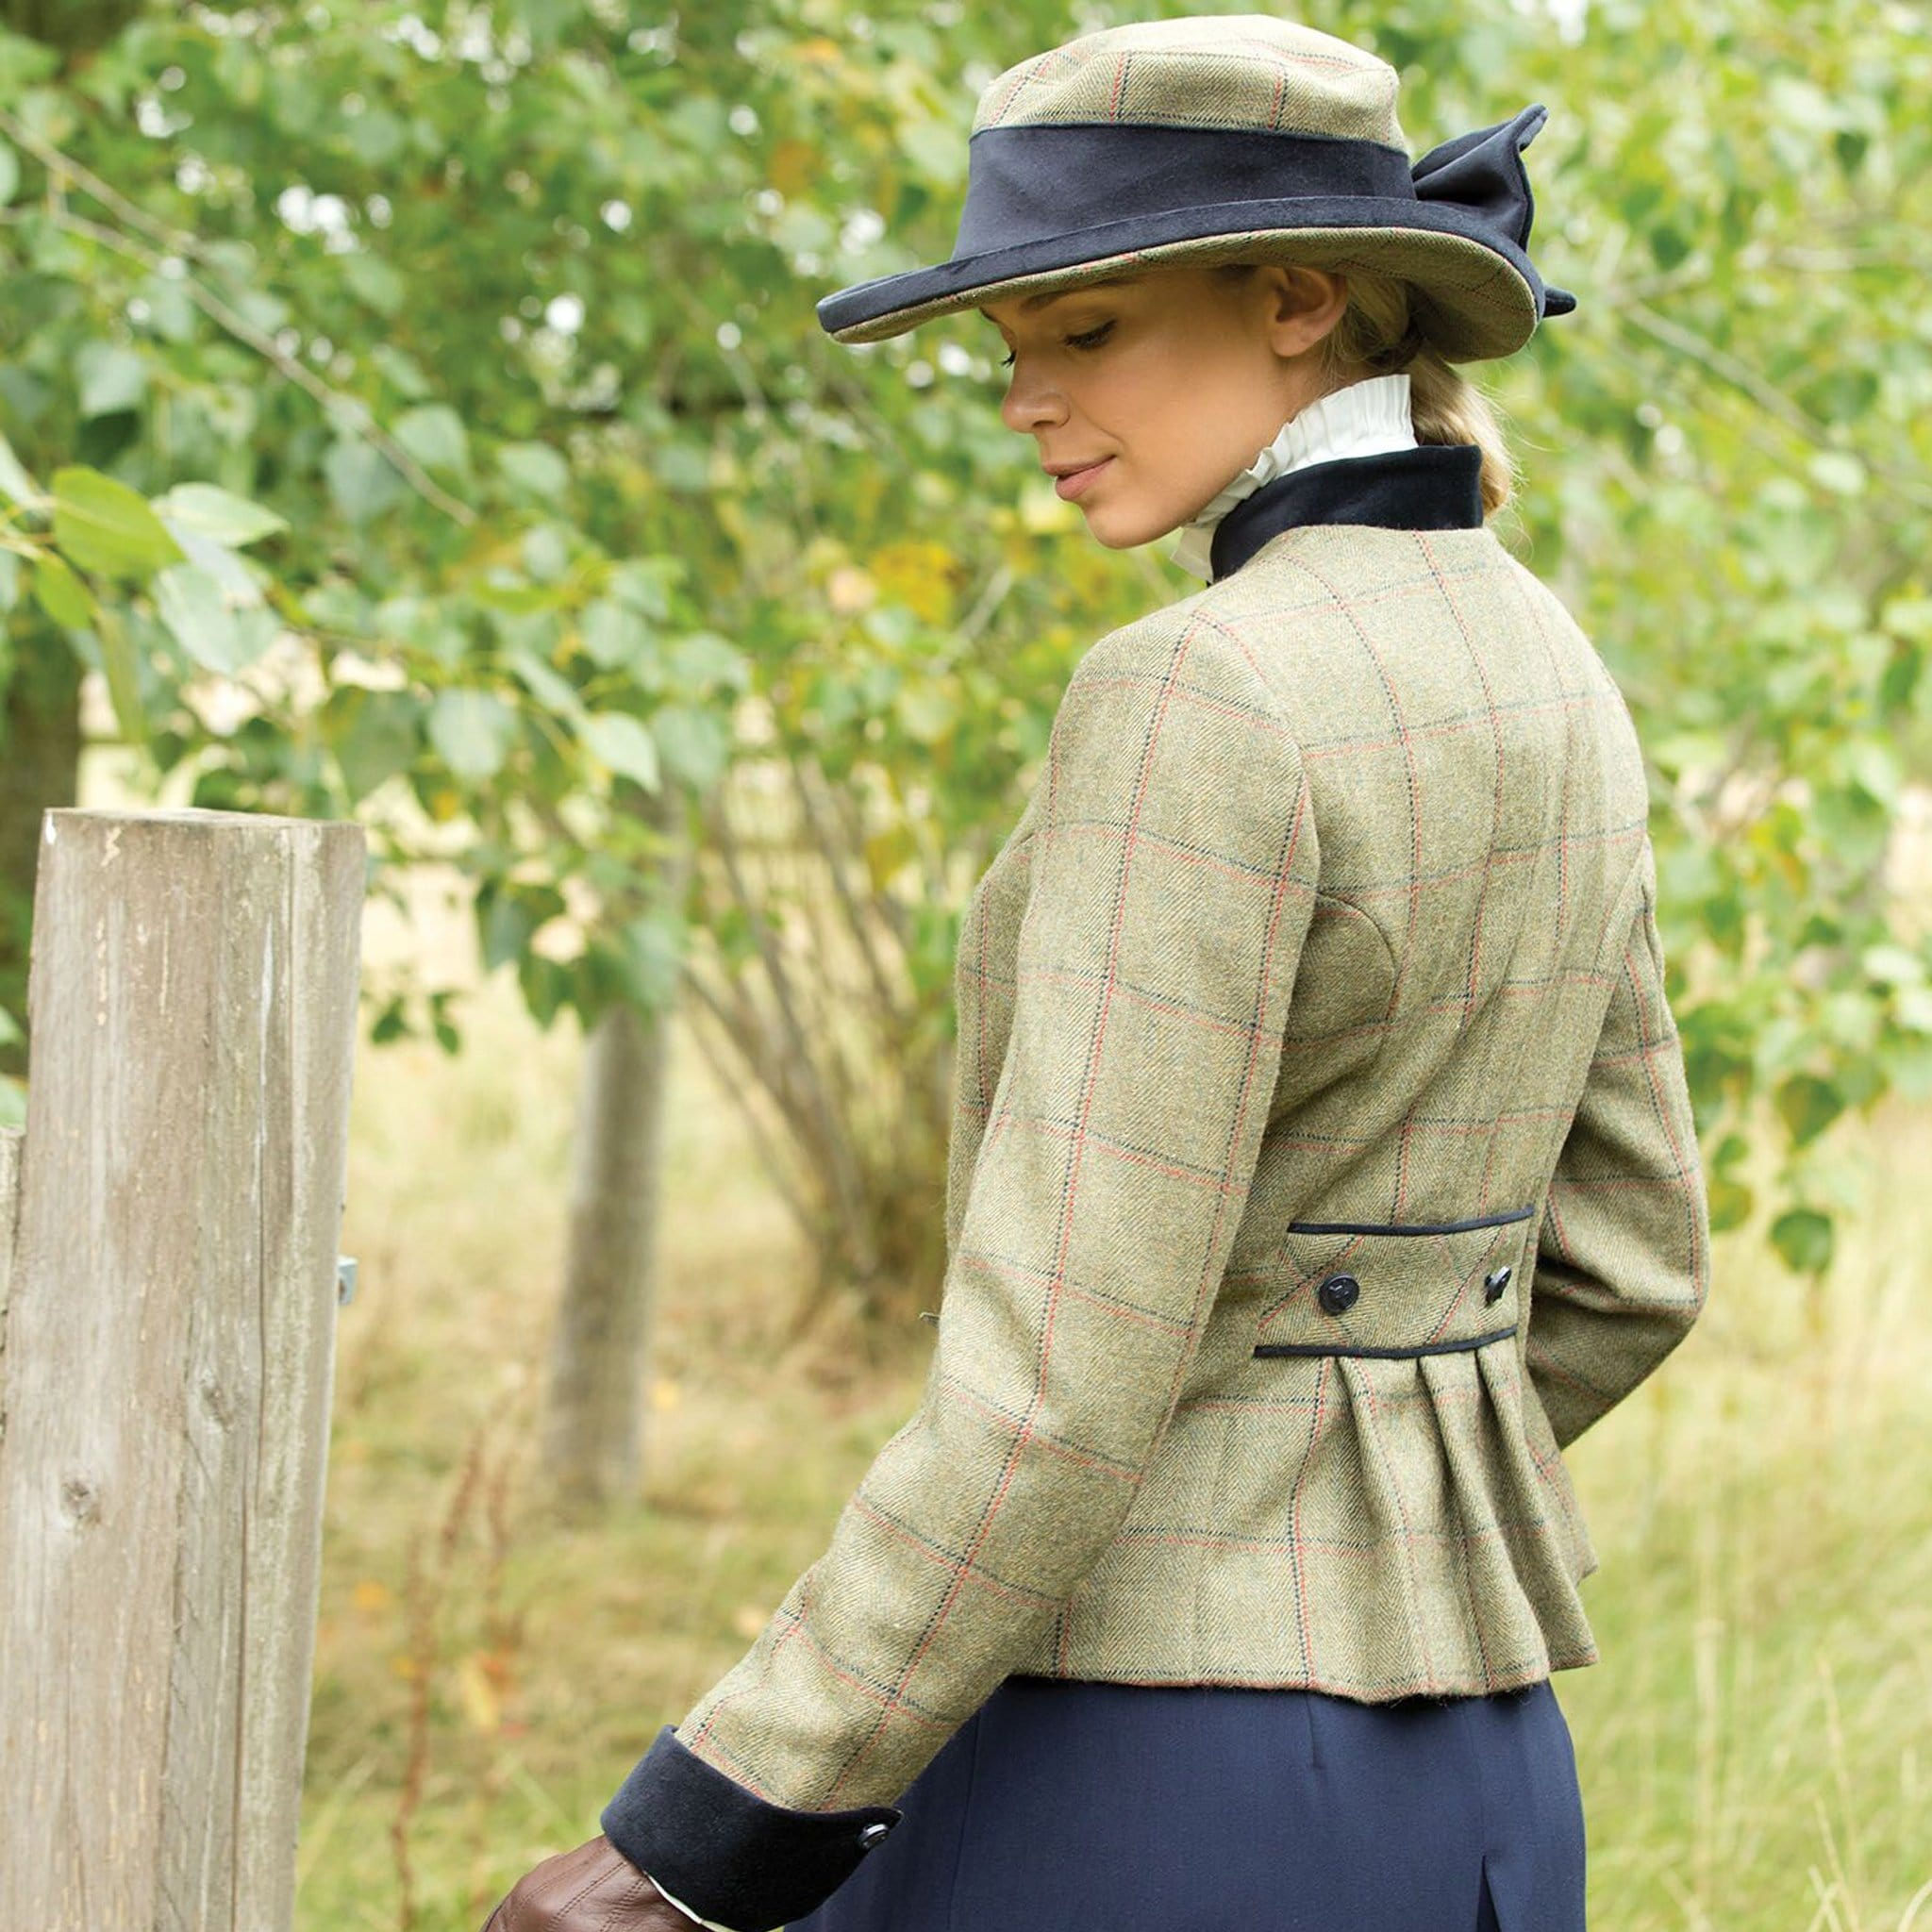 Equetech Launton Deluxe Tweed Lead Rein Jacket & Hat LLR Side